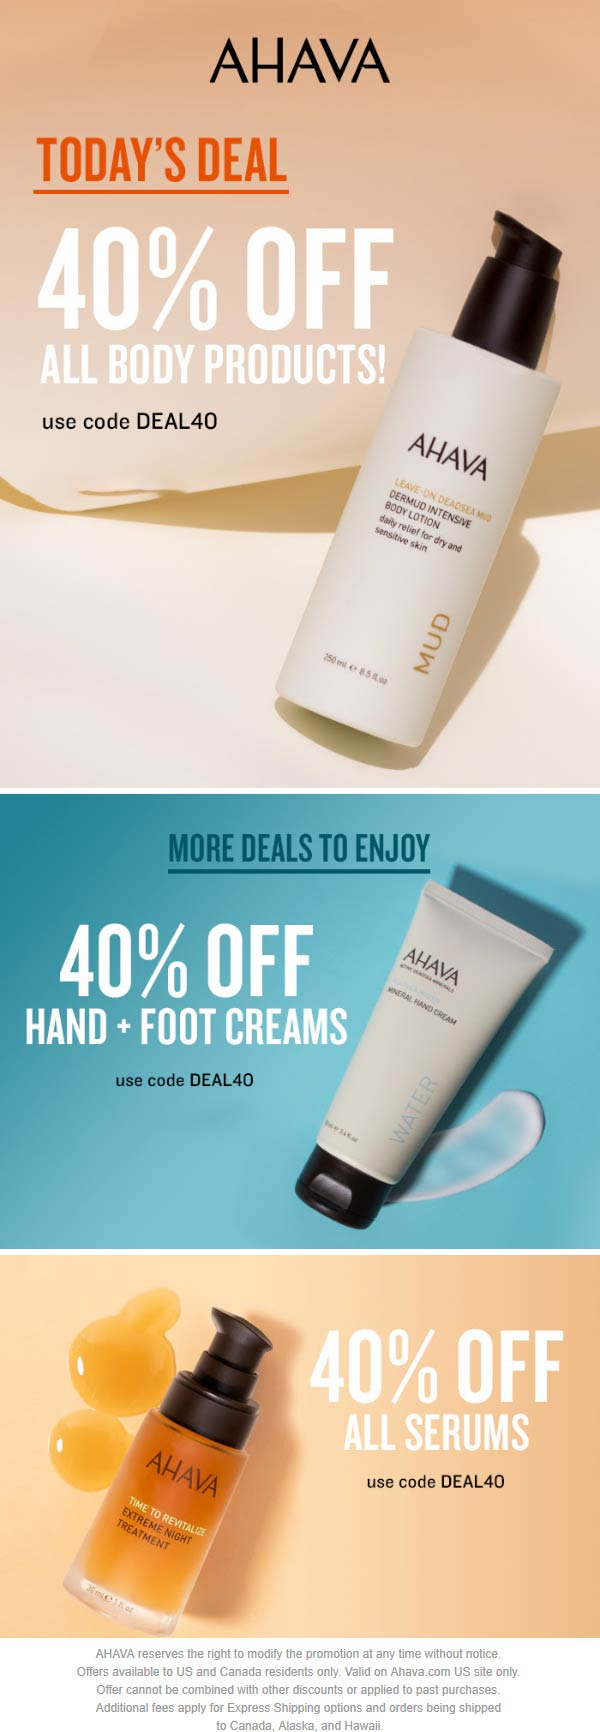 AHAVA Coupon November 2019 40% off all body products today at AHAVA via promo code DEAL40